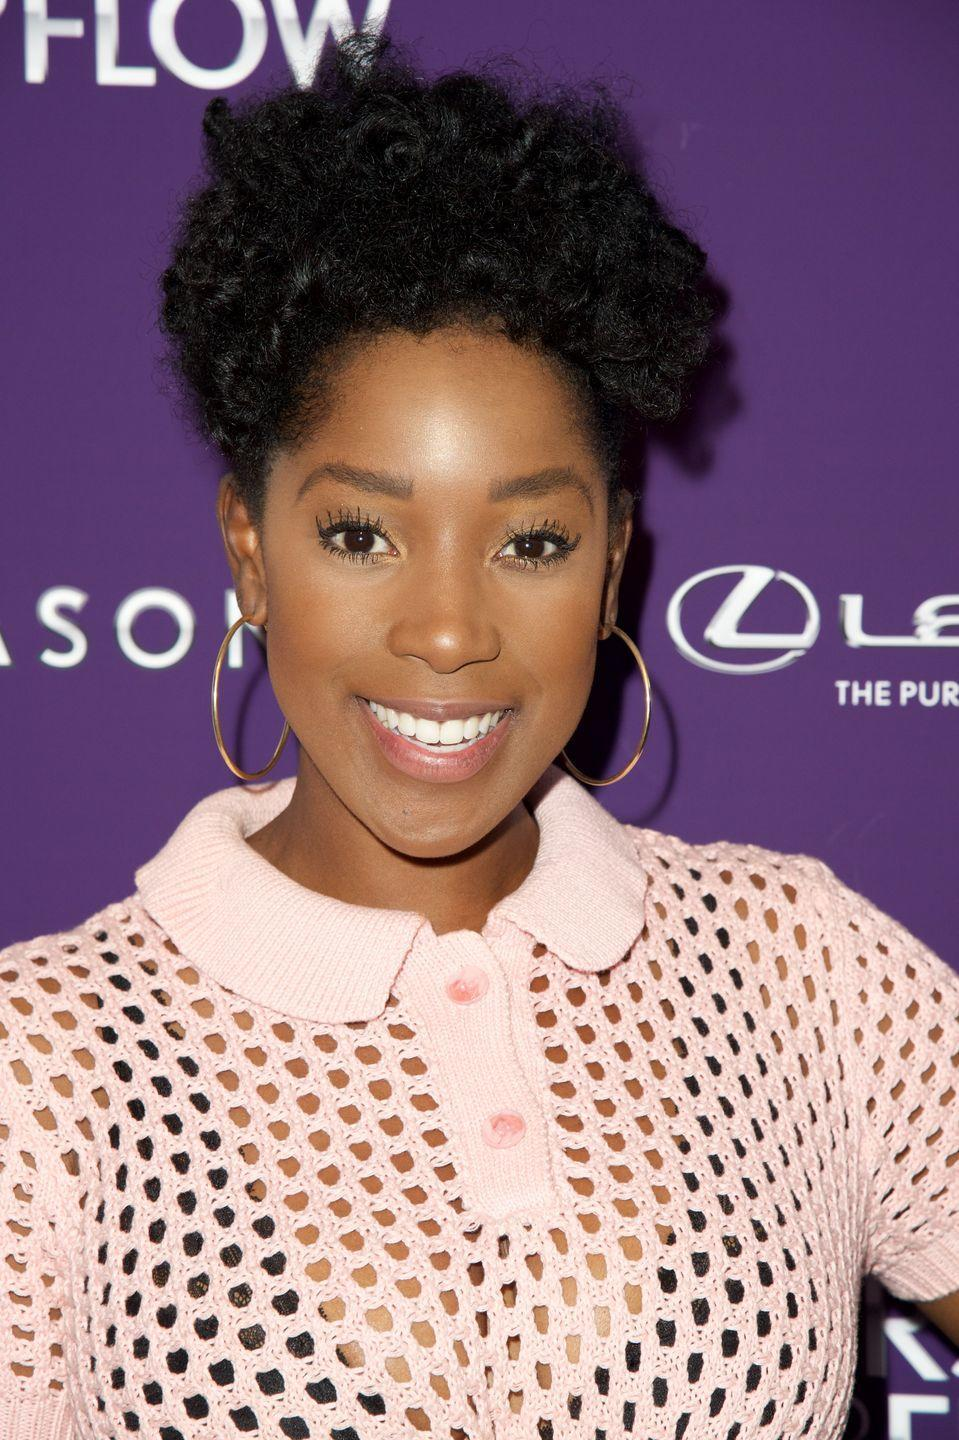 <p>Curls can be unpredictable, coming out perfect one day and not-so-perfect the next. That's where rod set curls come to the rescue. They create perfectly uniform spirals like these ringlets that actress <strong>Ashley Blaine Featherson</strong> is showing off.</p>